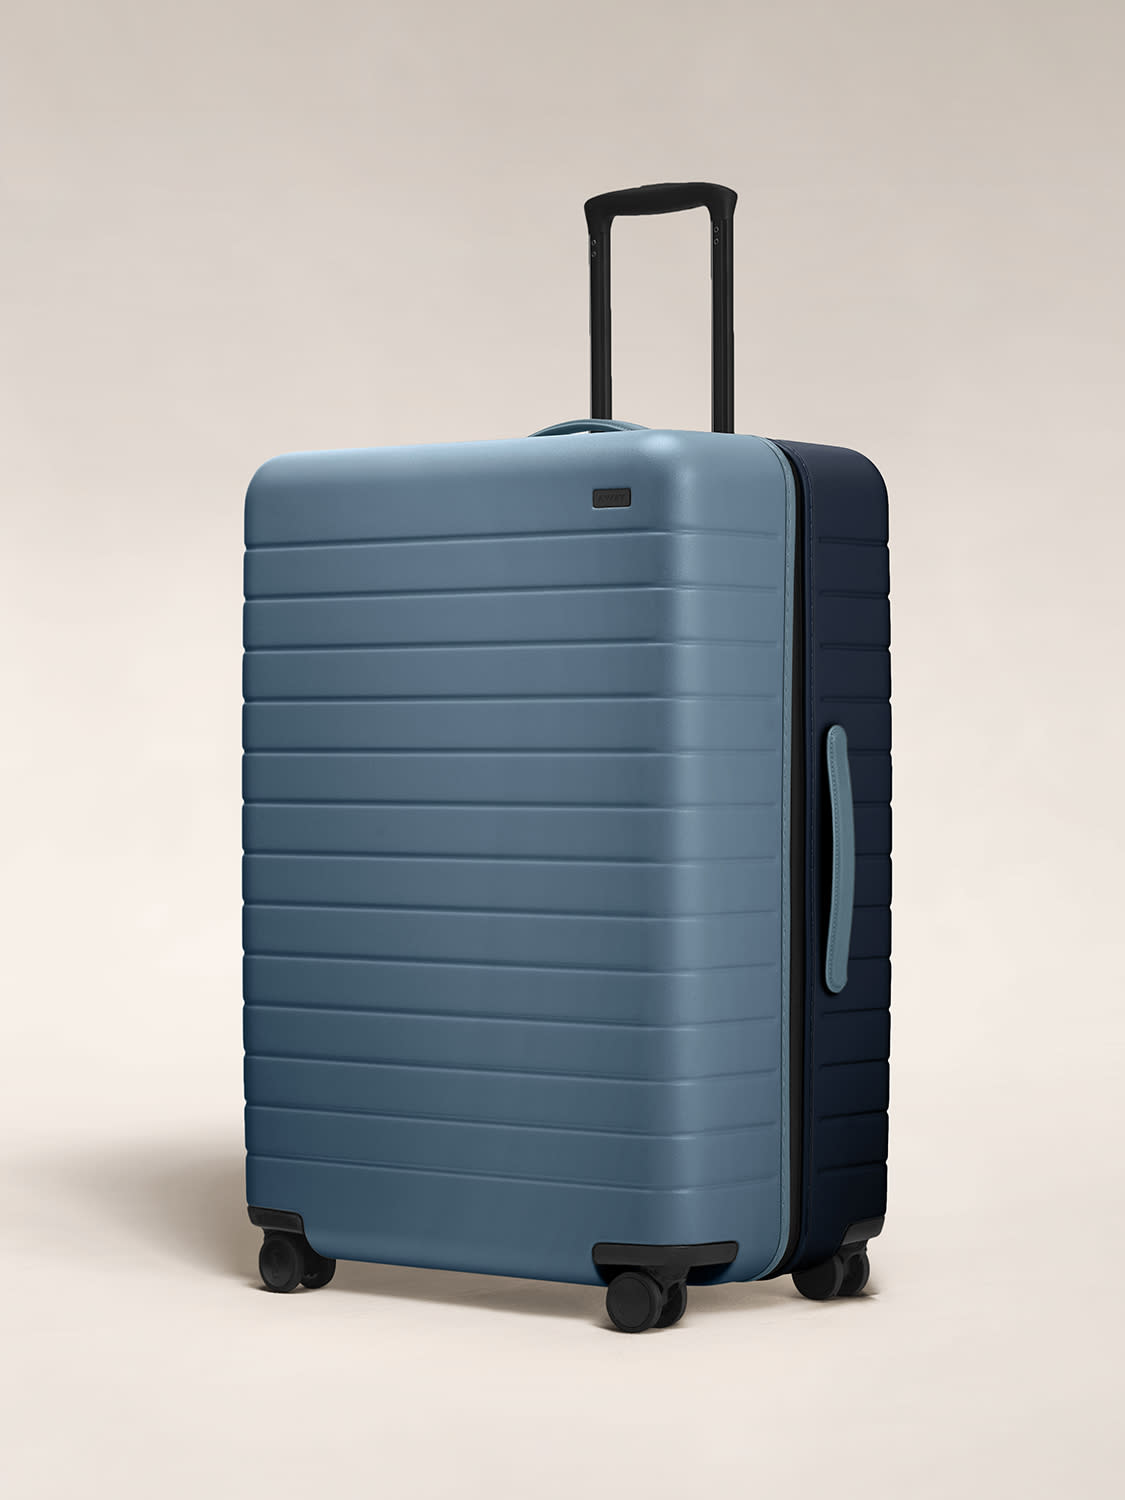 Angled view of The Large hardside suitcase in Coast/Navy